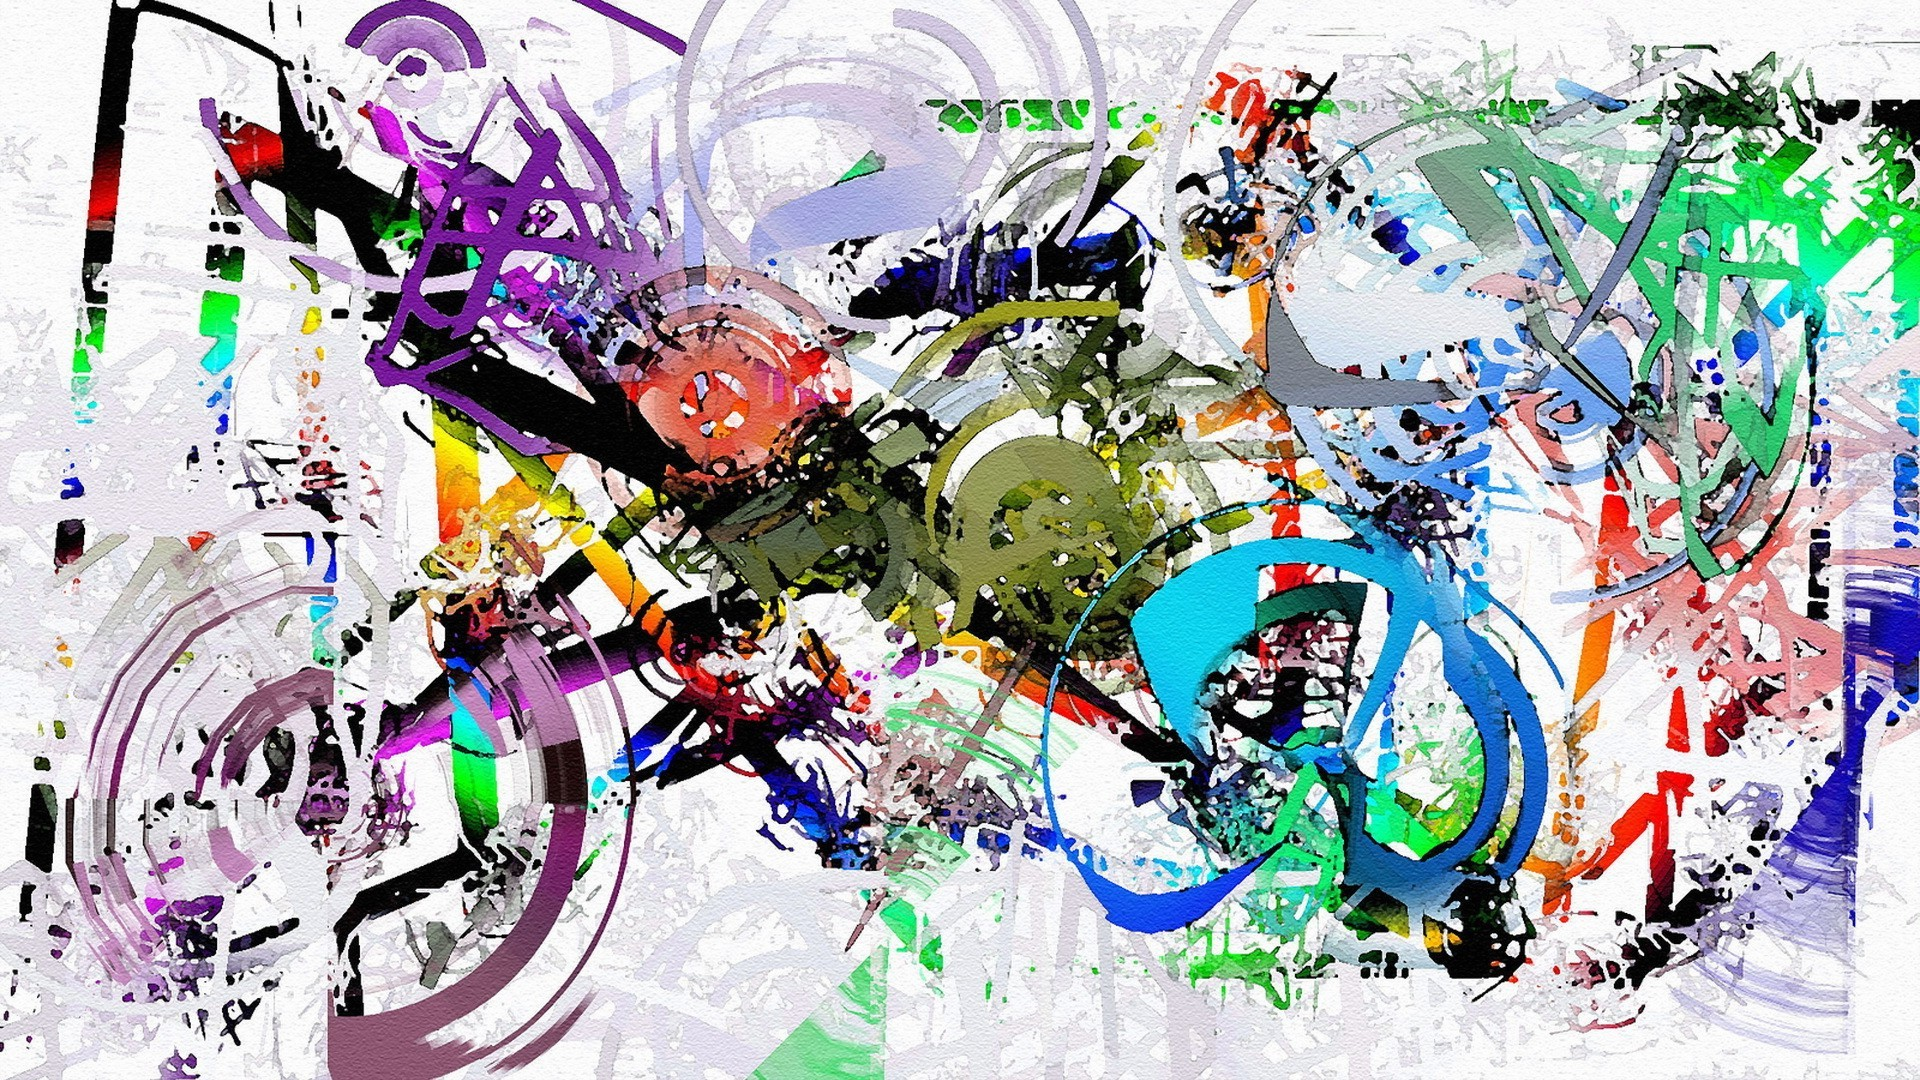 Killer Whale Hd Wallpaper Painting Artwork Abstract Paint Splatter Colorful